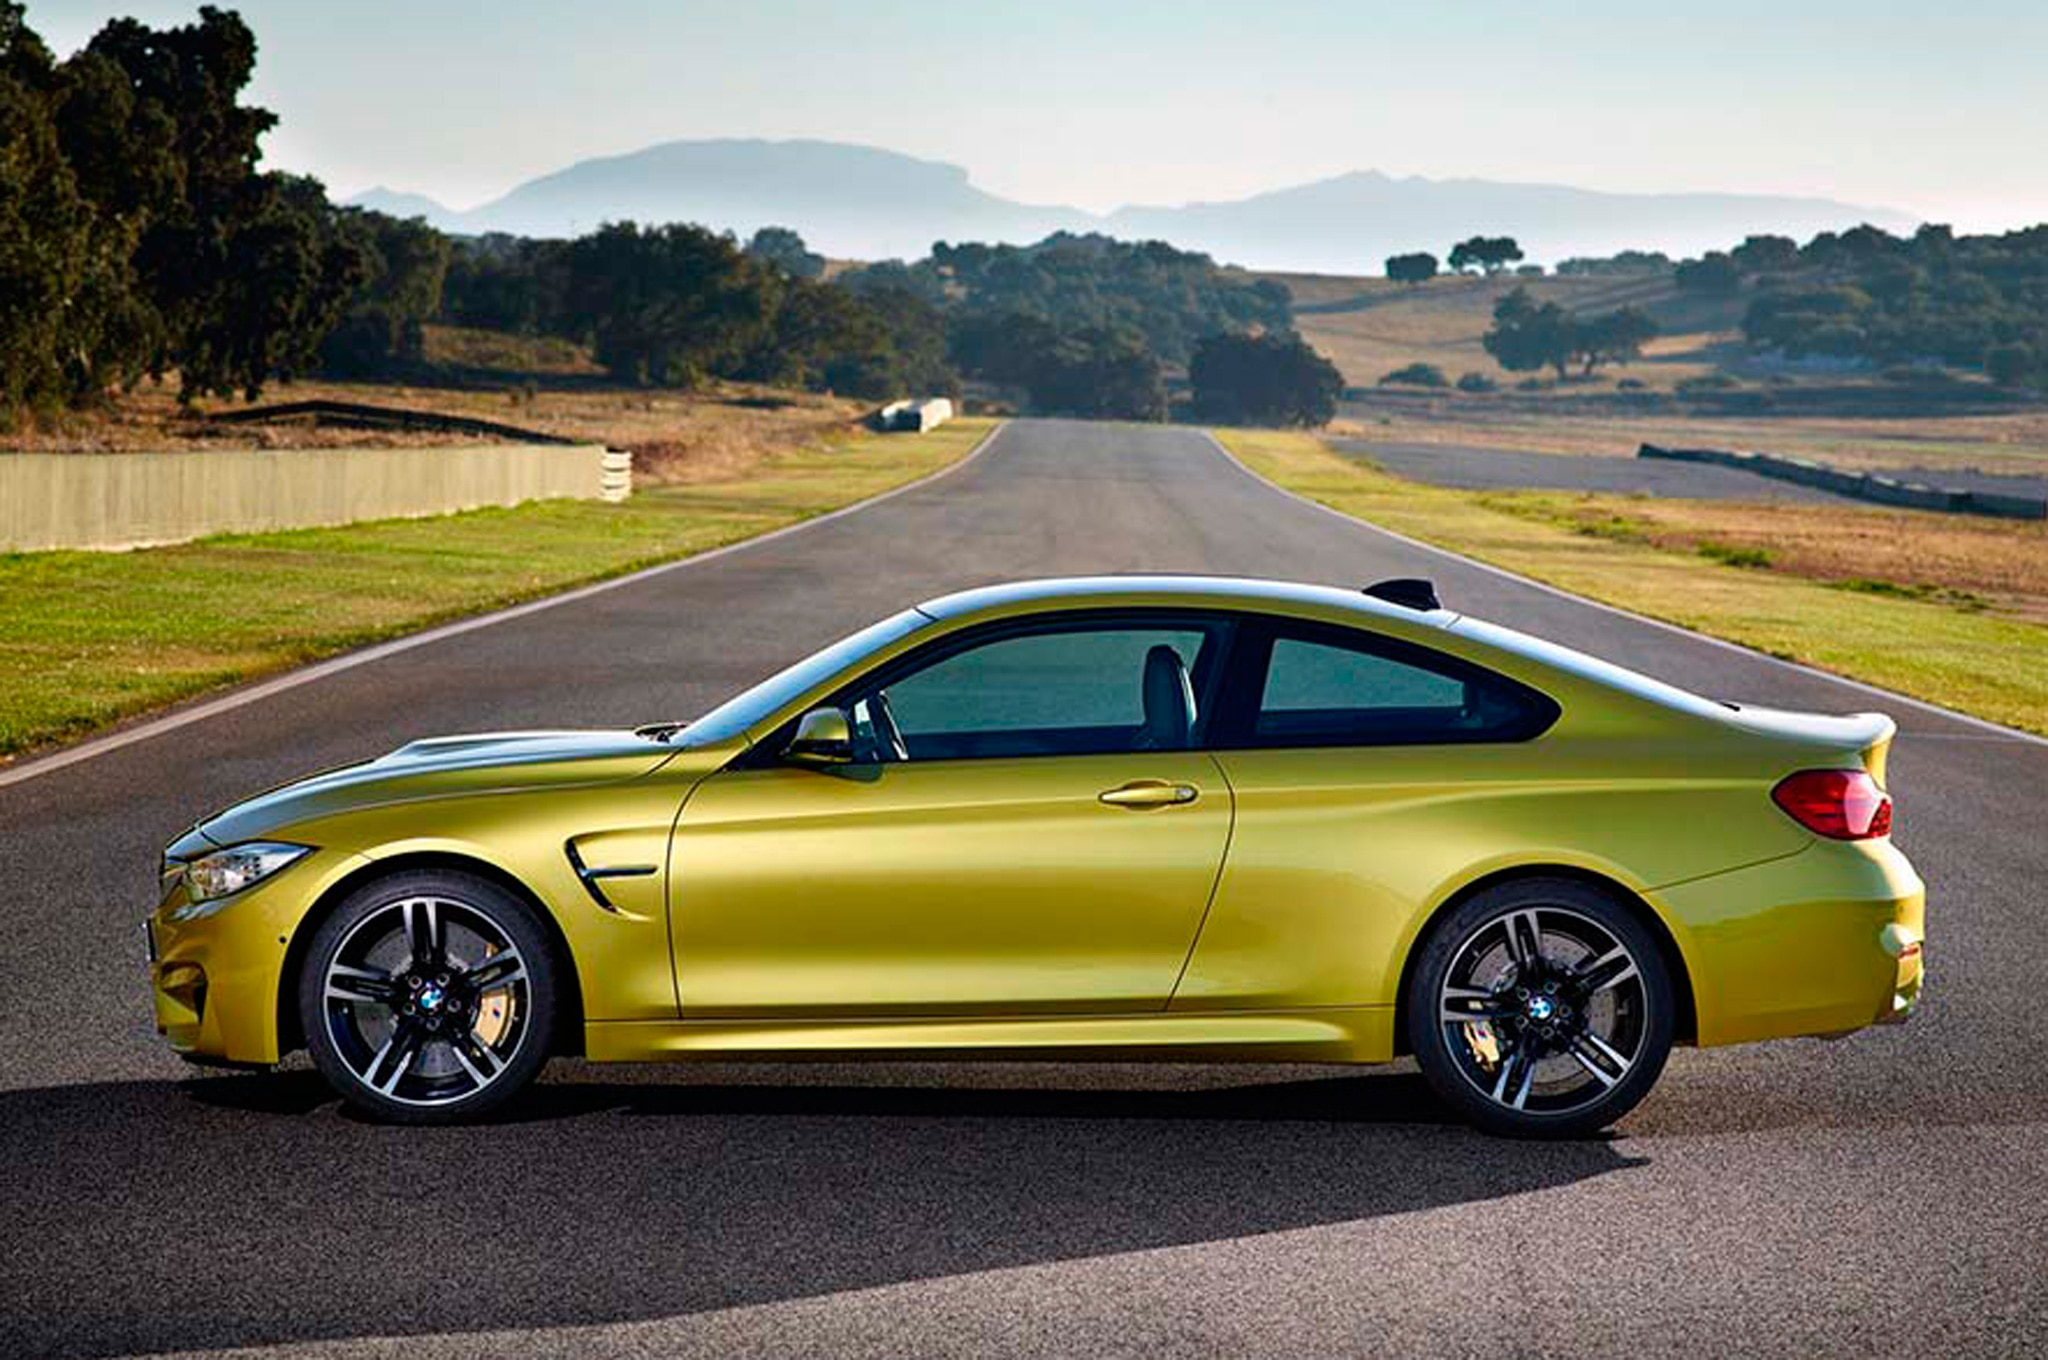 official 2014 bmw m3 m4 photos leak online. Black Bedroom Furniture Sets. Home Design Ideas